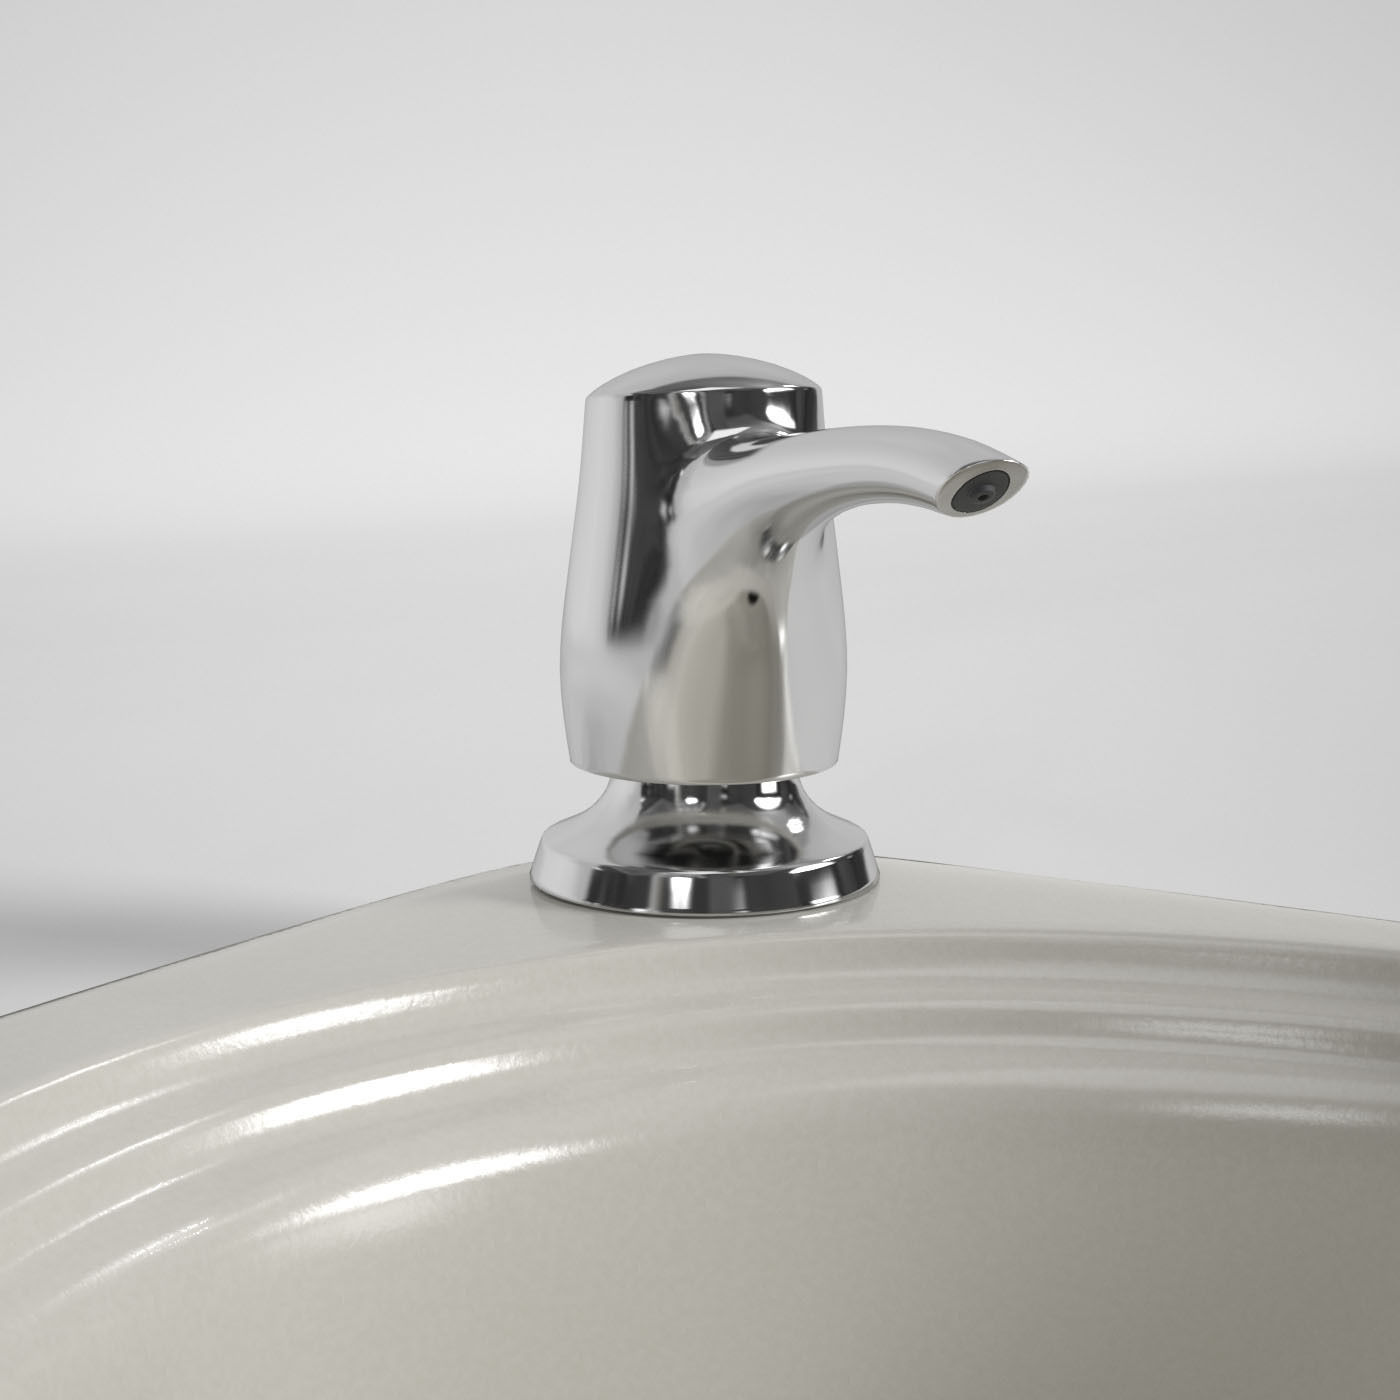 Kitchen Faucet And Sink Kohler 3d Model Max Mat Cgtrader Com